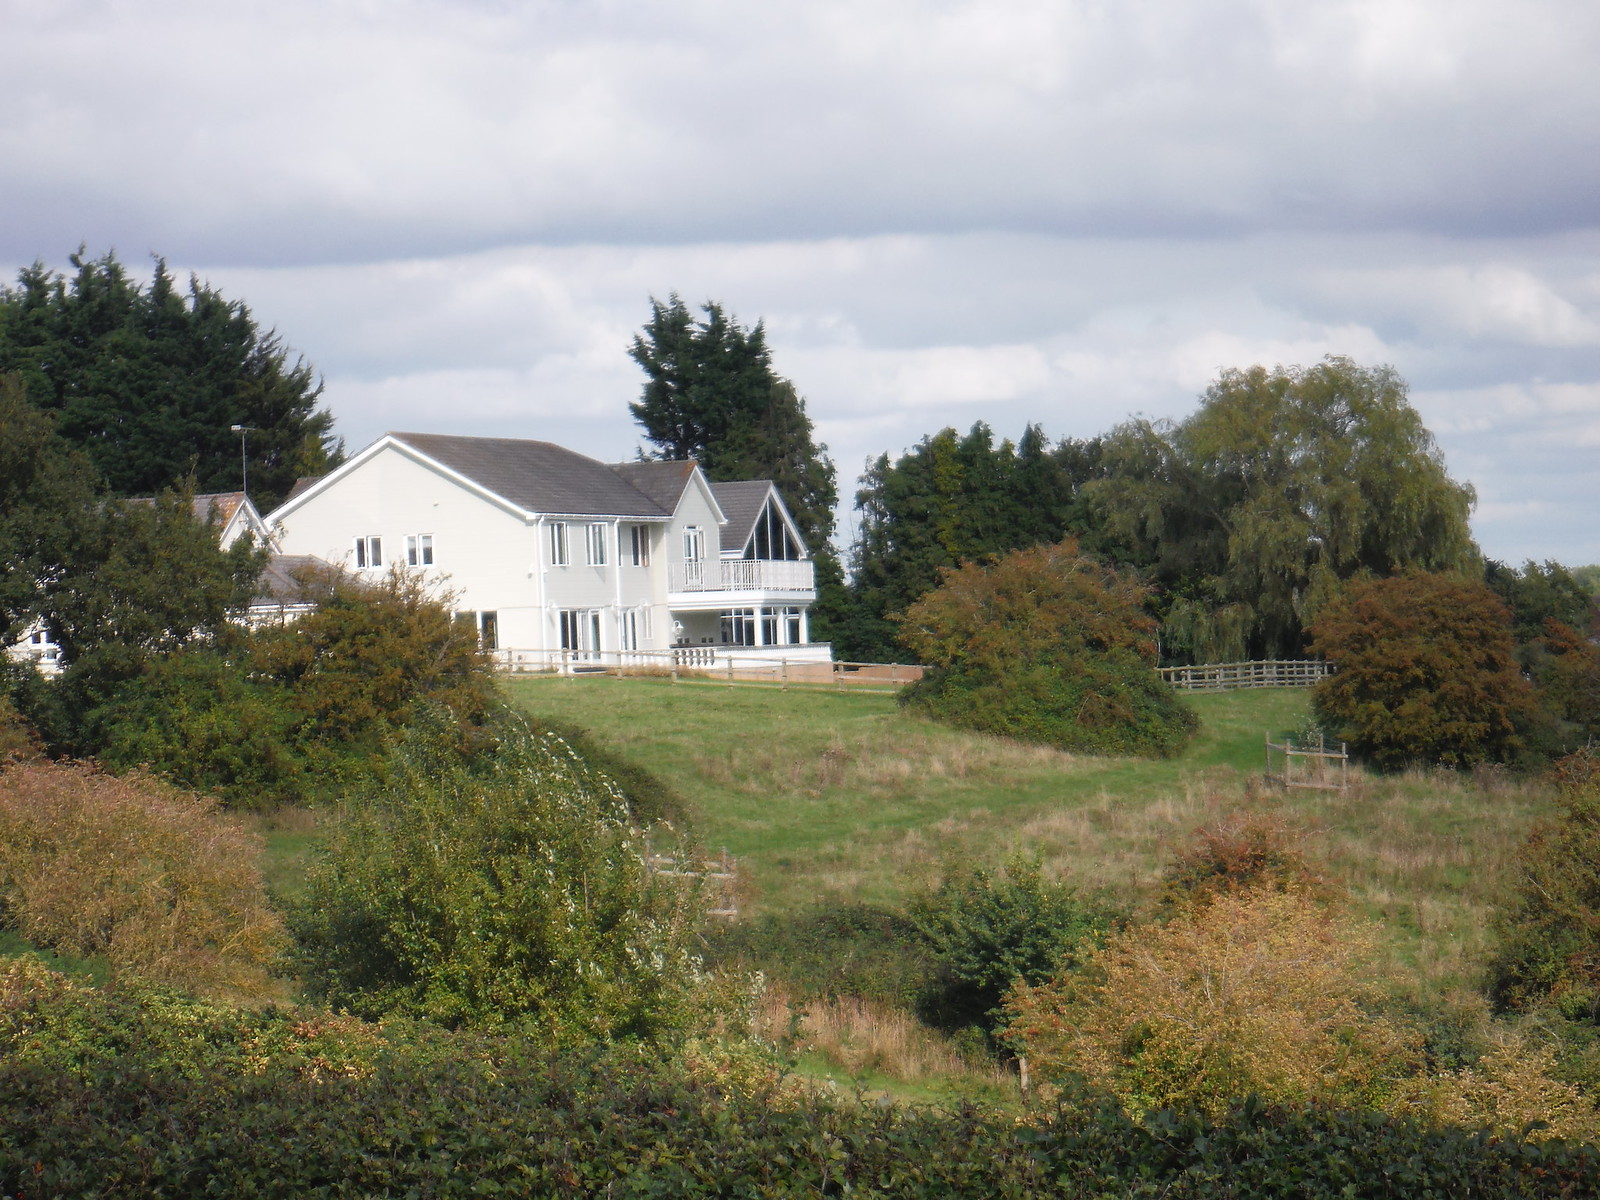 Rather Large House with Grand Views (Pulloxhill) SWC Walk 230 Harlington to Flitwick